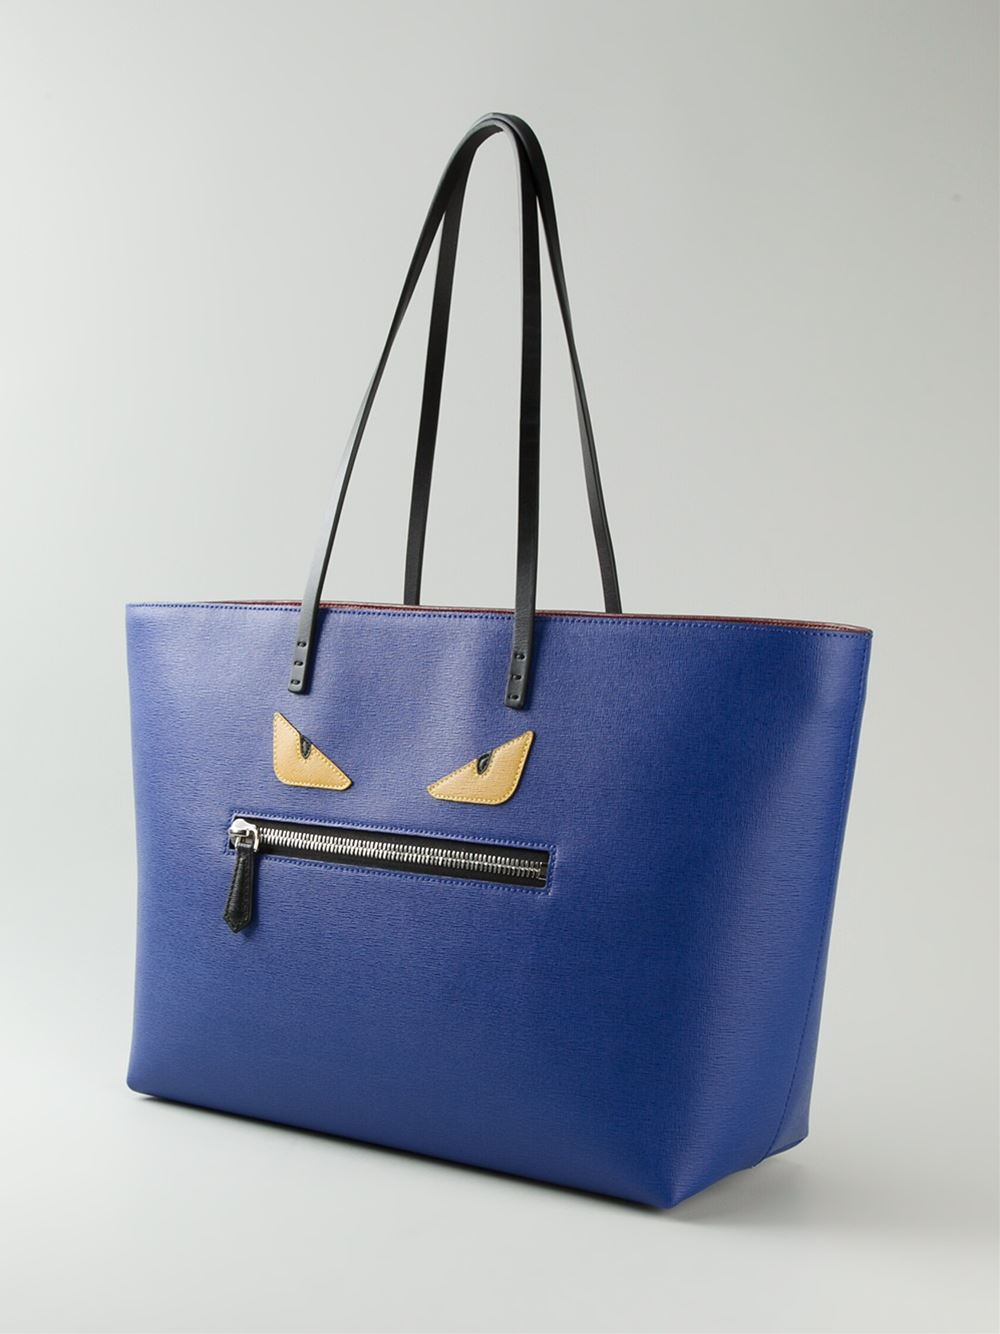 Lyst - Fendi Bag Bugs  Roll  Tote Bag in Blue 5dc441b89a1e6